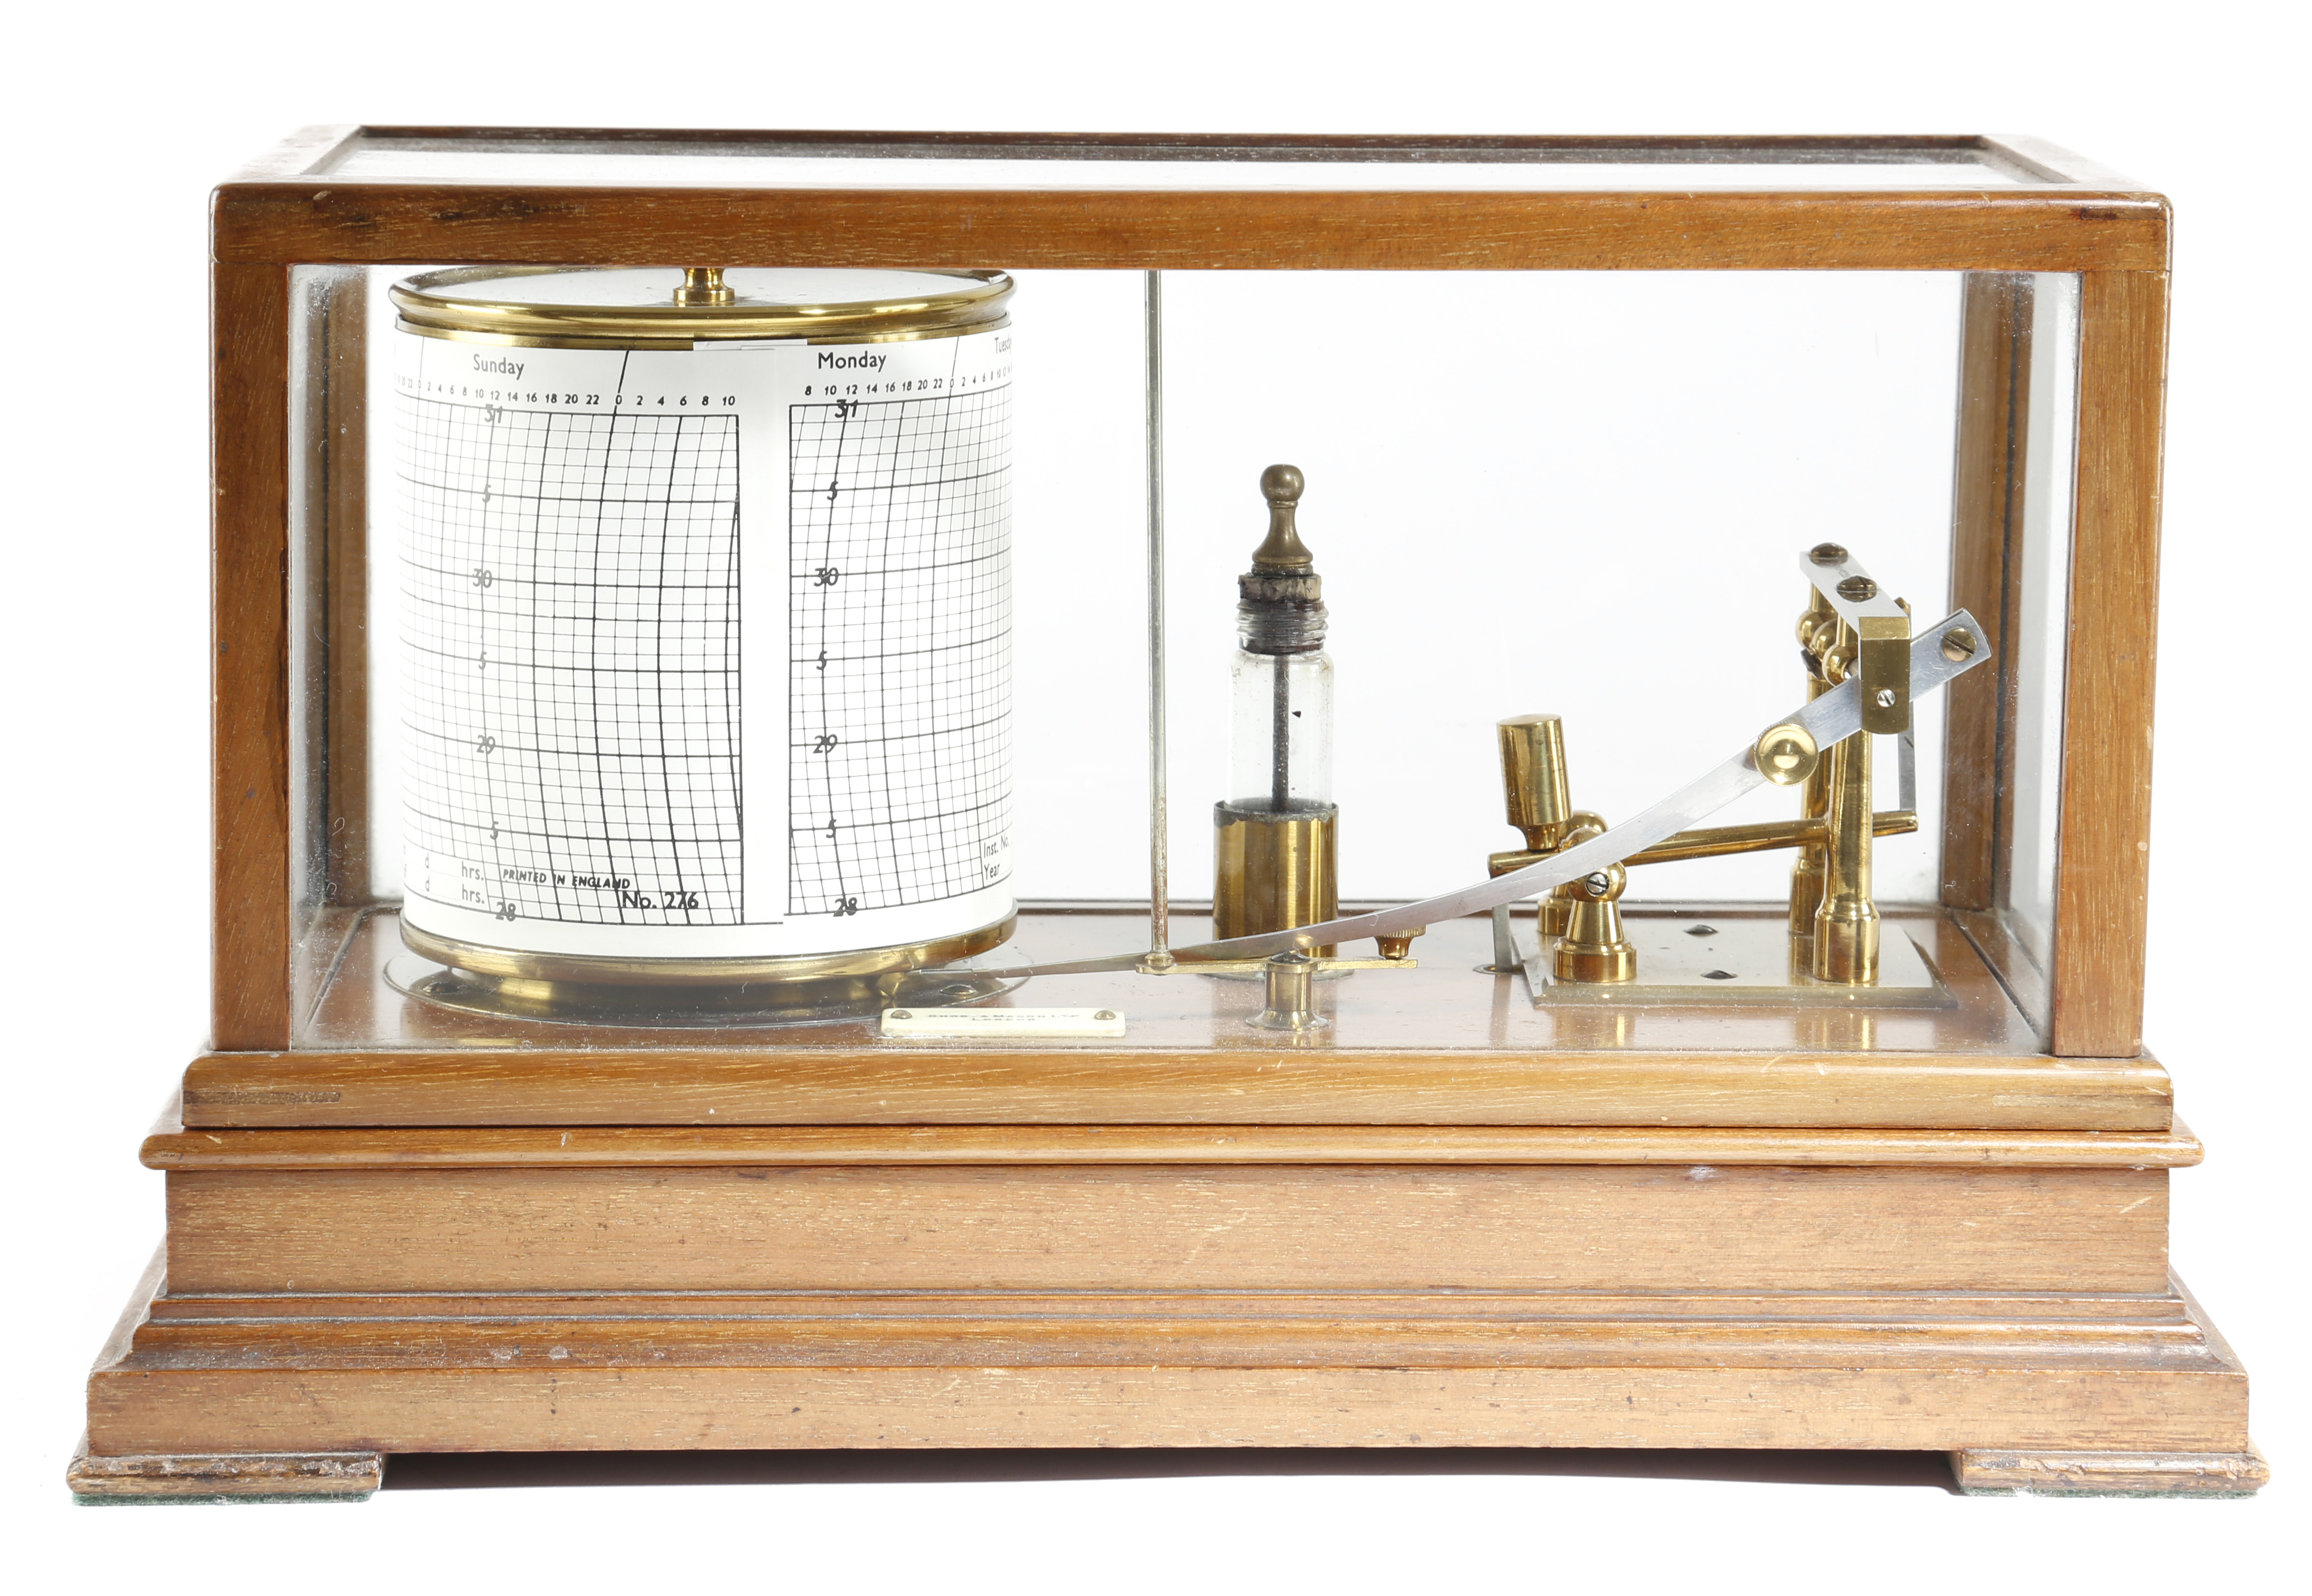 Lot 464 - A MAHOGANY BAROGRAPH BY SHORT AND MASON EARLY 20TH CENTURY with a glazed lift-off cover, with an